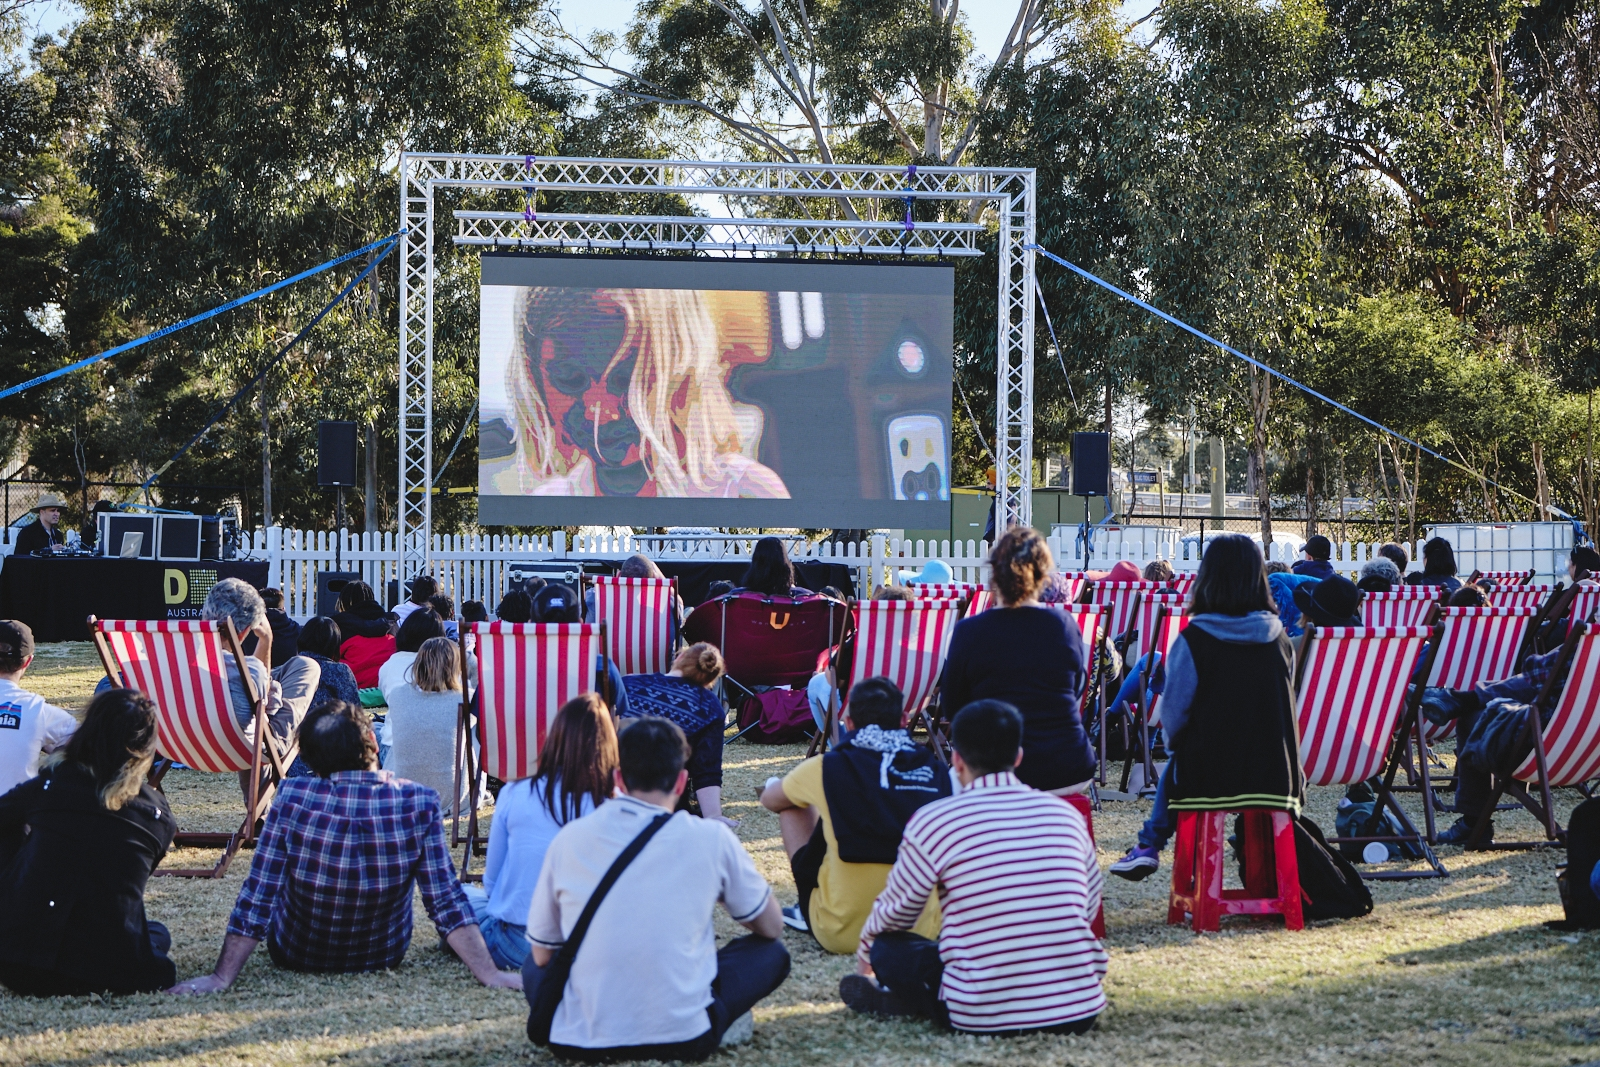 A large group of people sitting in front of a large screen with a film.